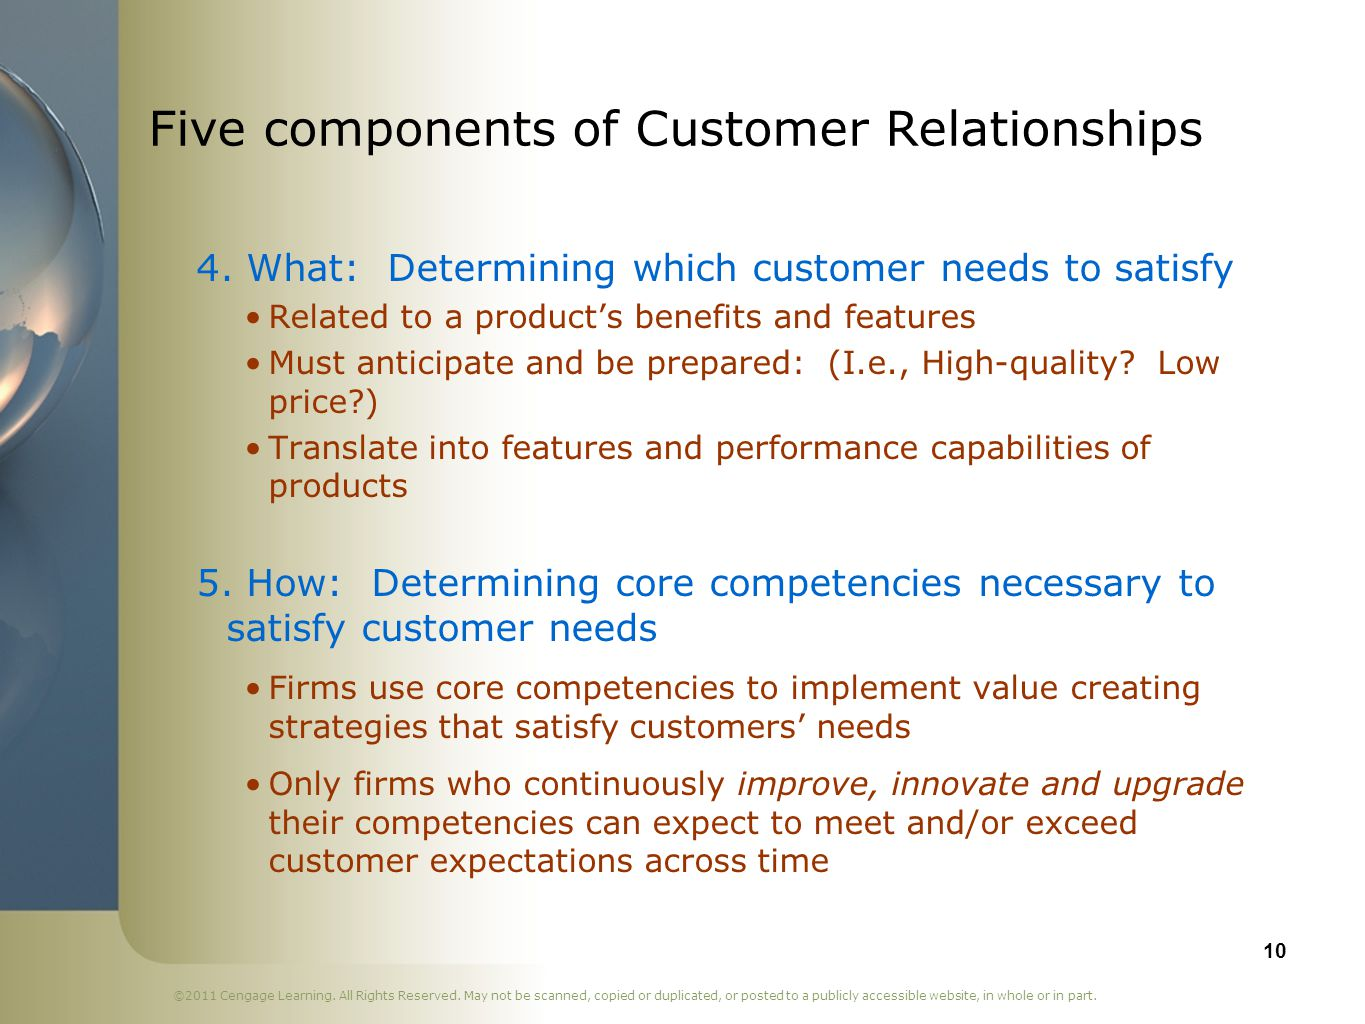 Five components of Customer Relationships